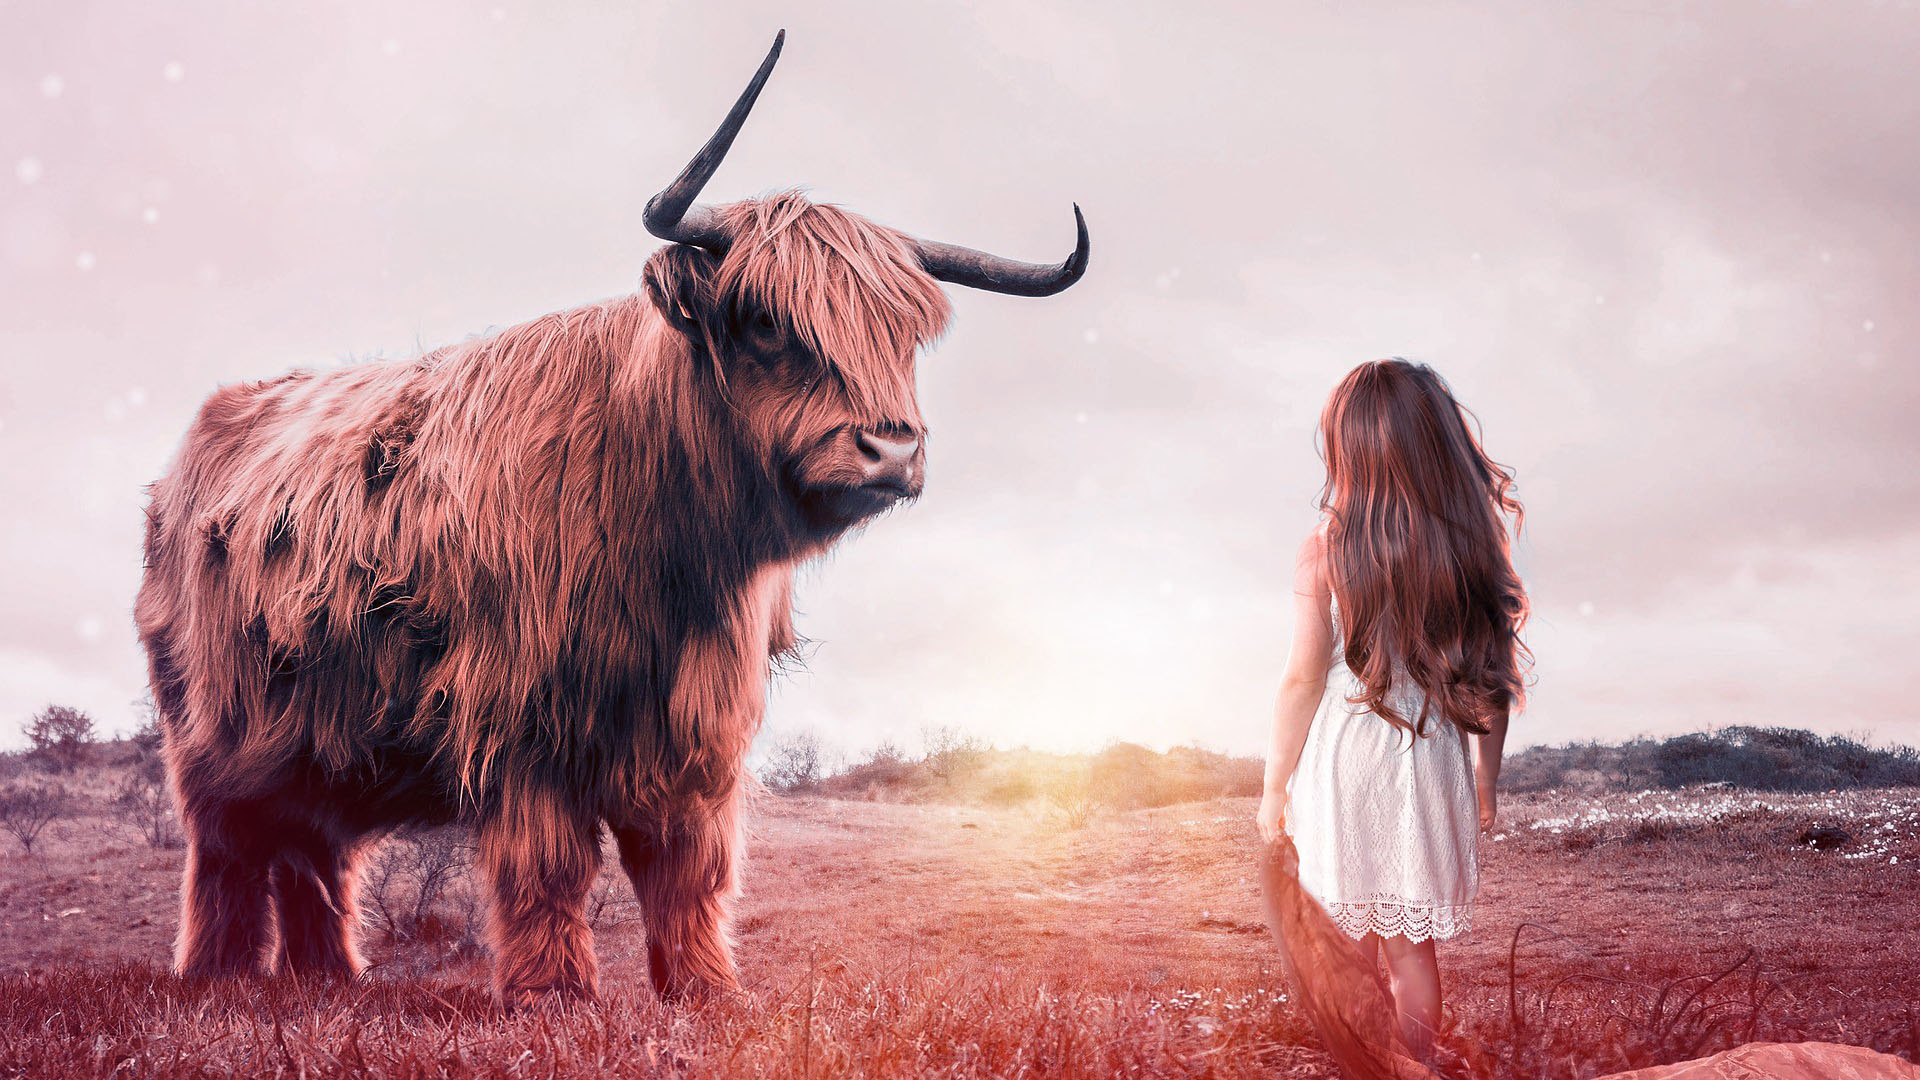 Brave girls stands up to bull